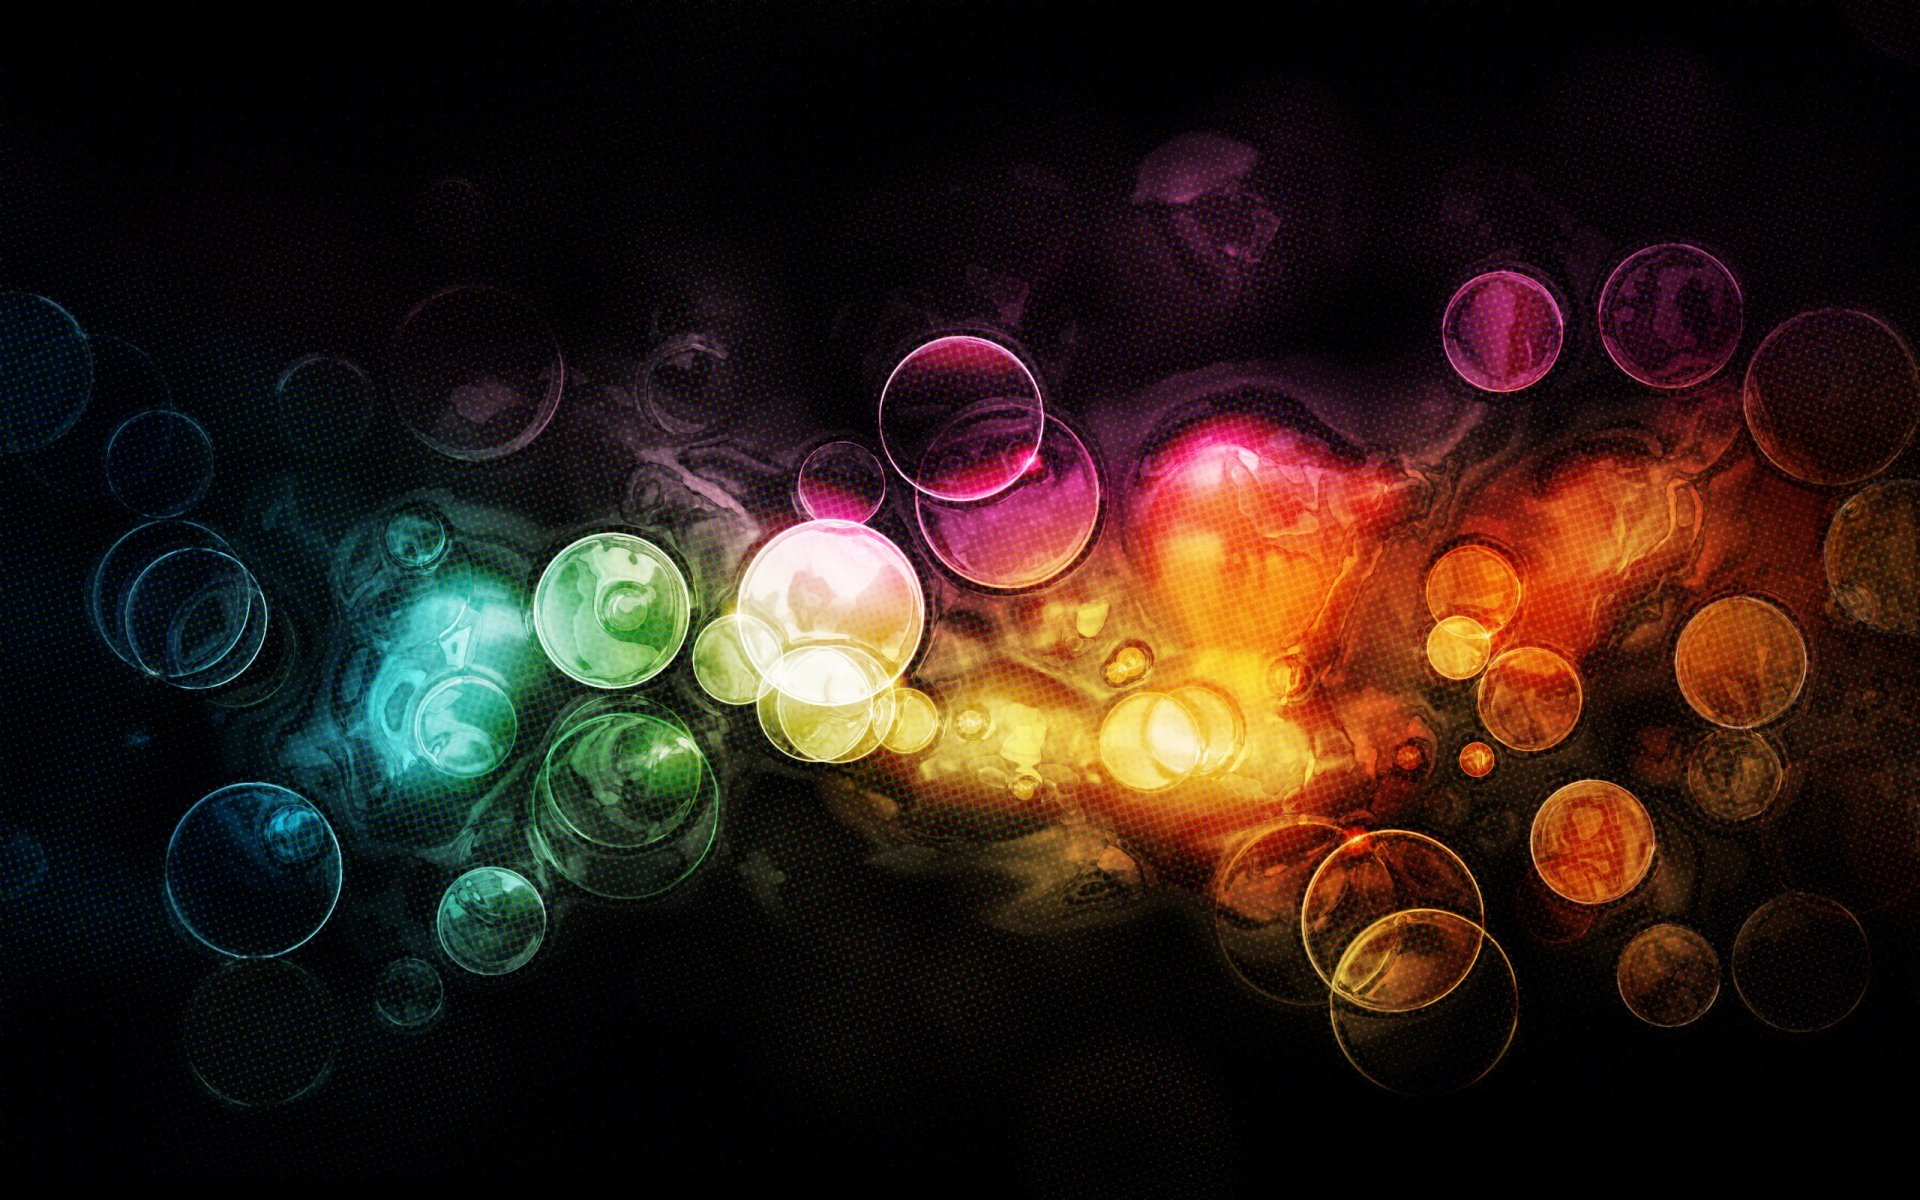 Artistic - Colors  Circle Bubble Abstract Texture Digital Digital Art Colorful Pattern Wallpaper